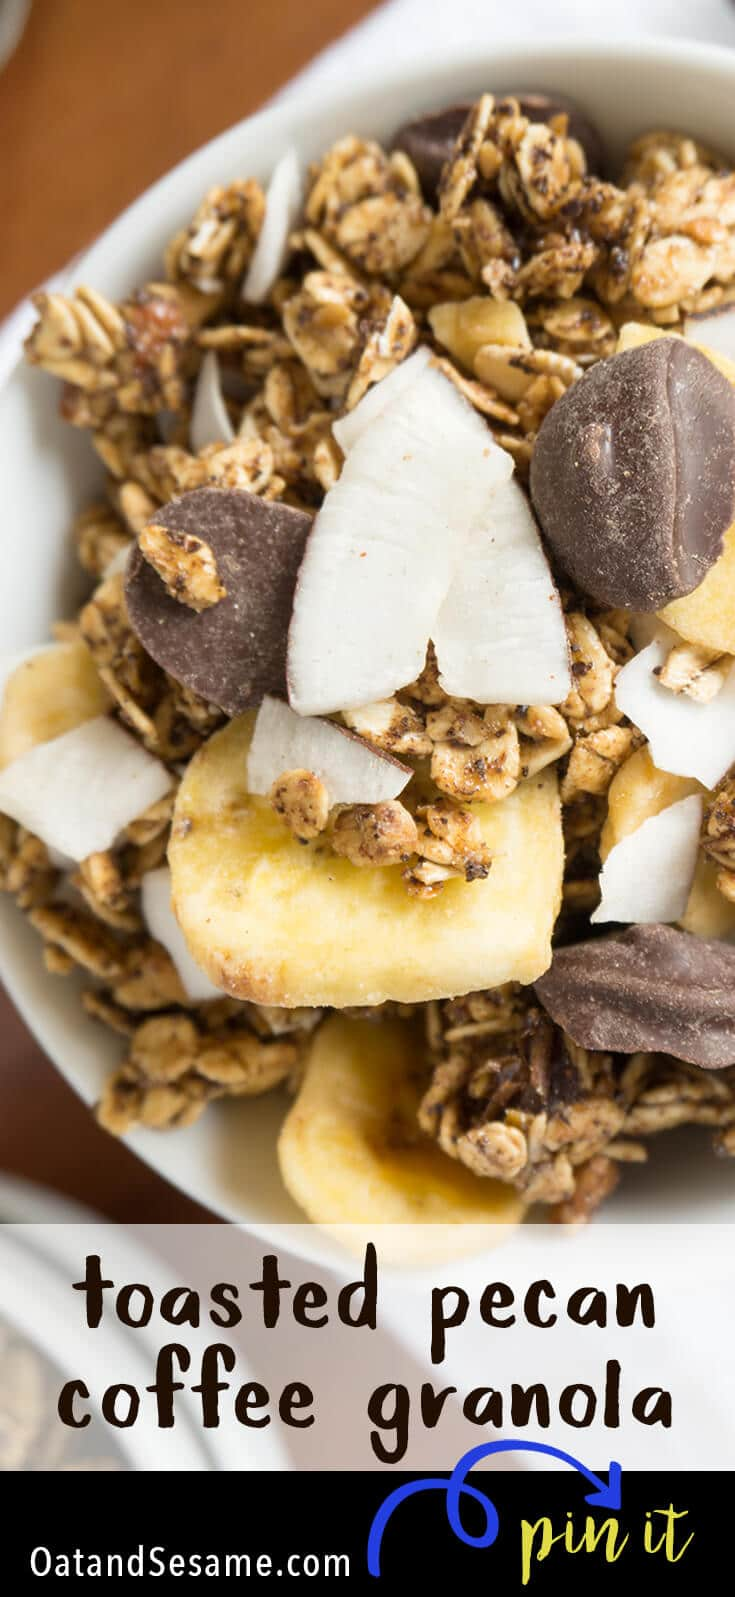 Chunks of semi-sweet chocolate, coconut and banana chips mixed into a toasted Georgia Pecan Coffee Granola for a scrumptious breakfast or snack! | #BREAKFAST | #GRANOLA | #COFFEE | #VEGAN | #GLUTENFREE | #Recipes at OatandSesame.com